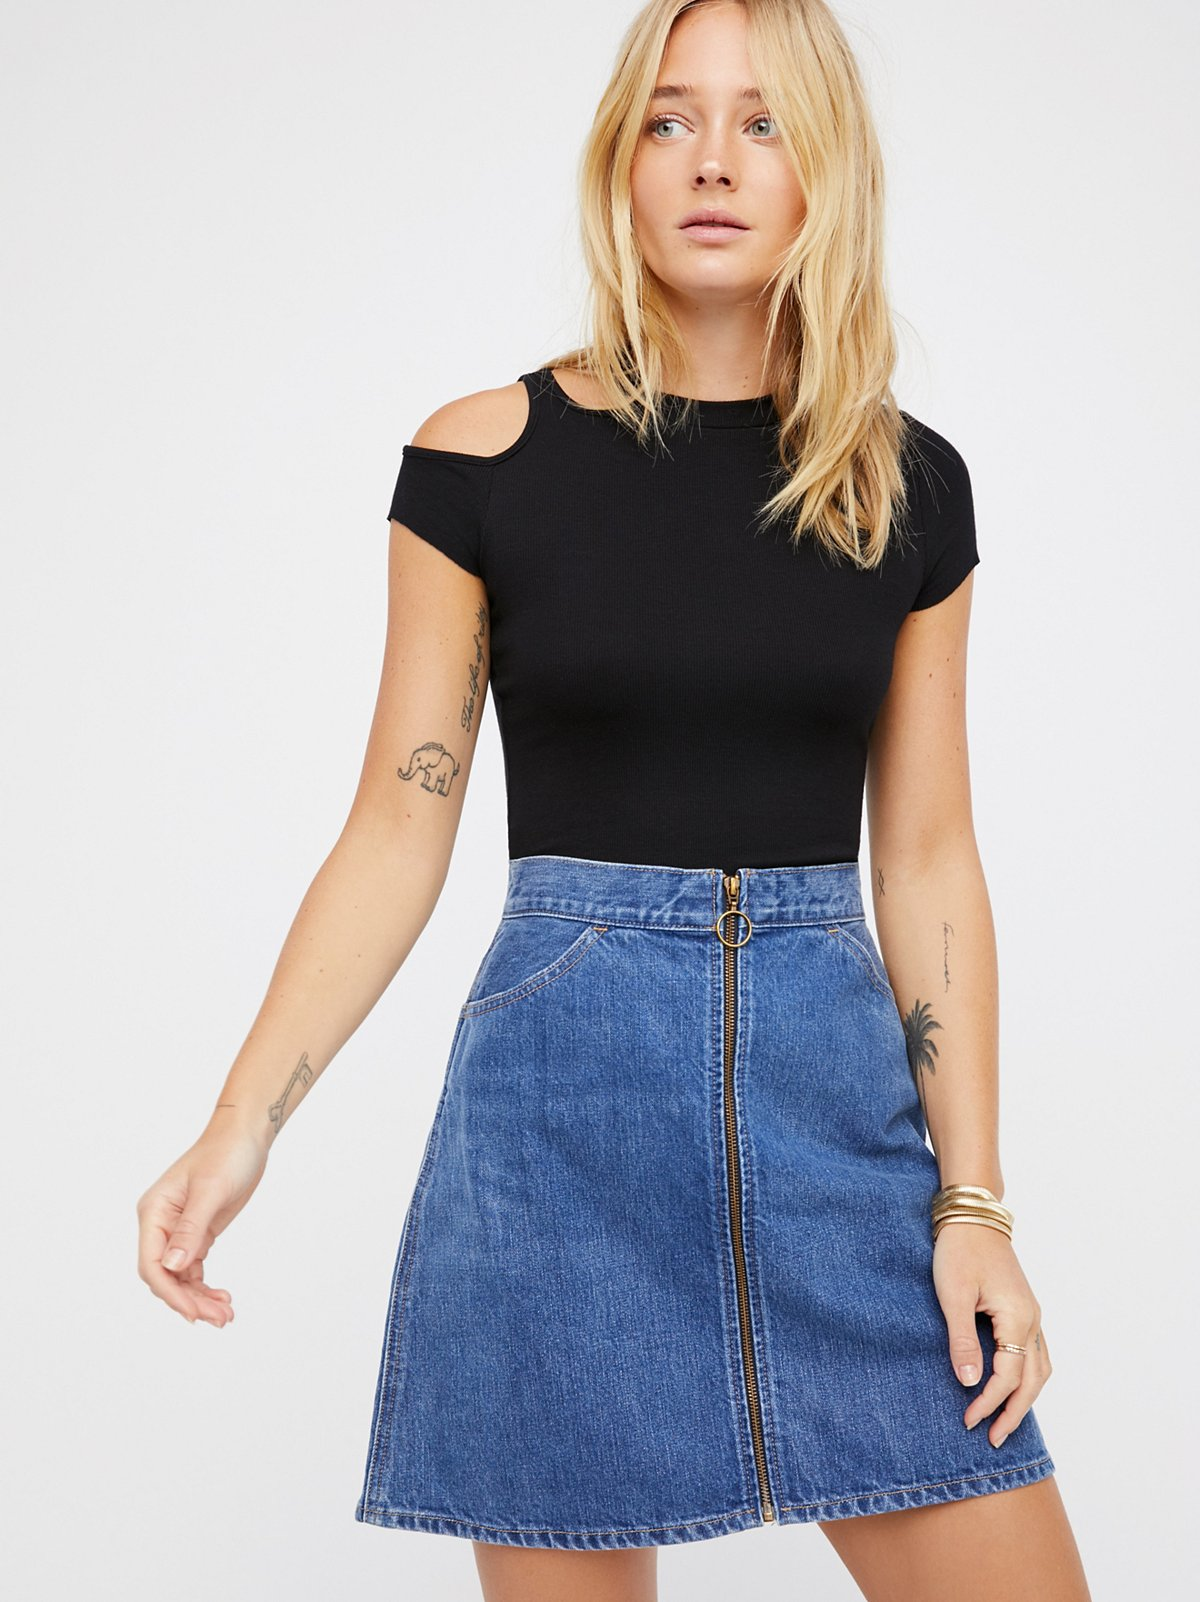 Levi's Orange Tab Denim Skirt at Free People Clothing Boutique